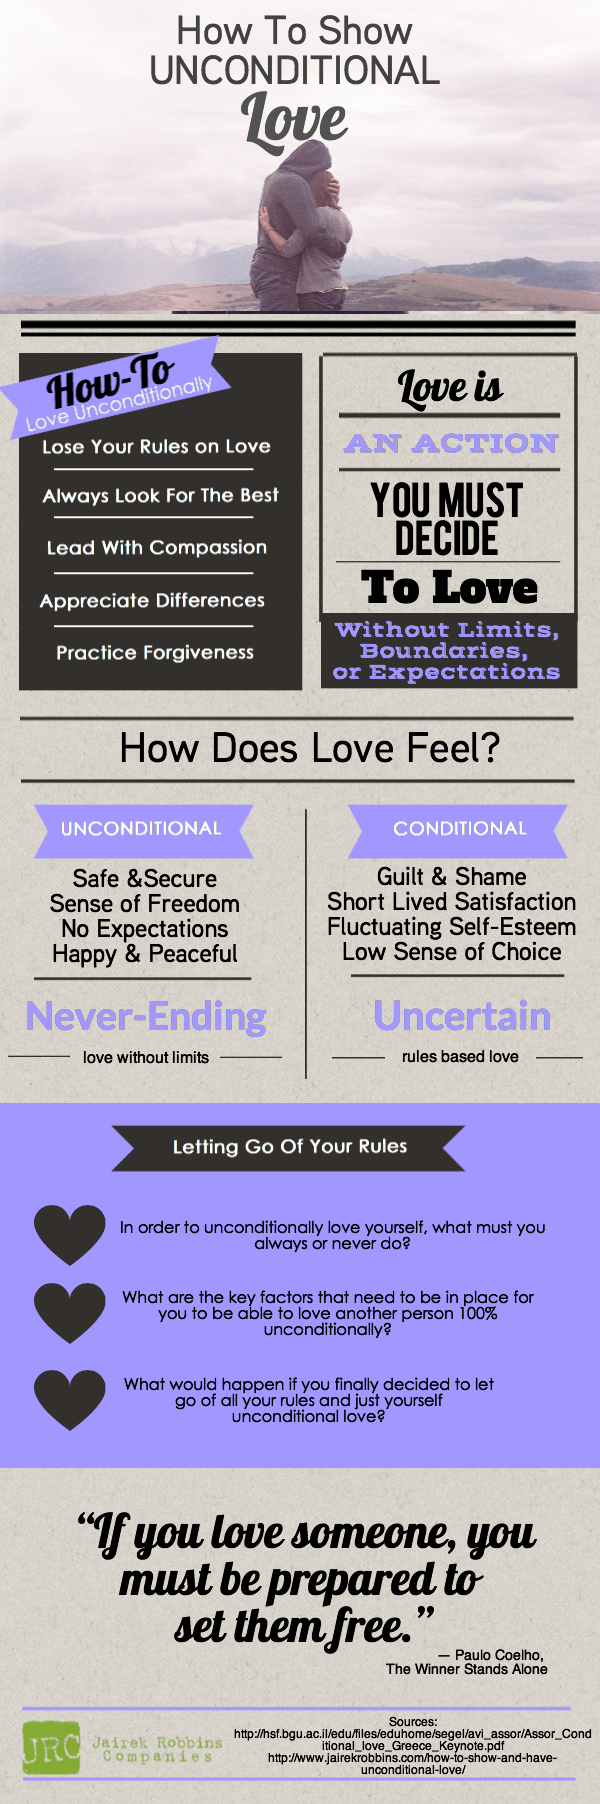 how to show love unconditionally infographic relationships dating love advice